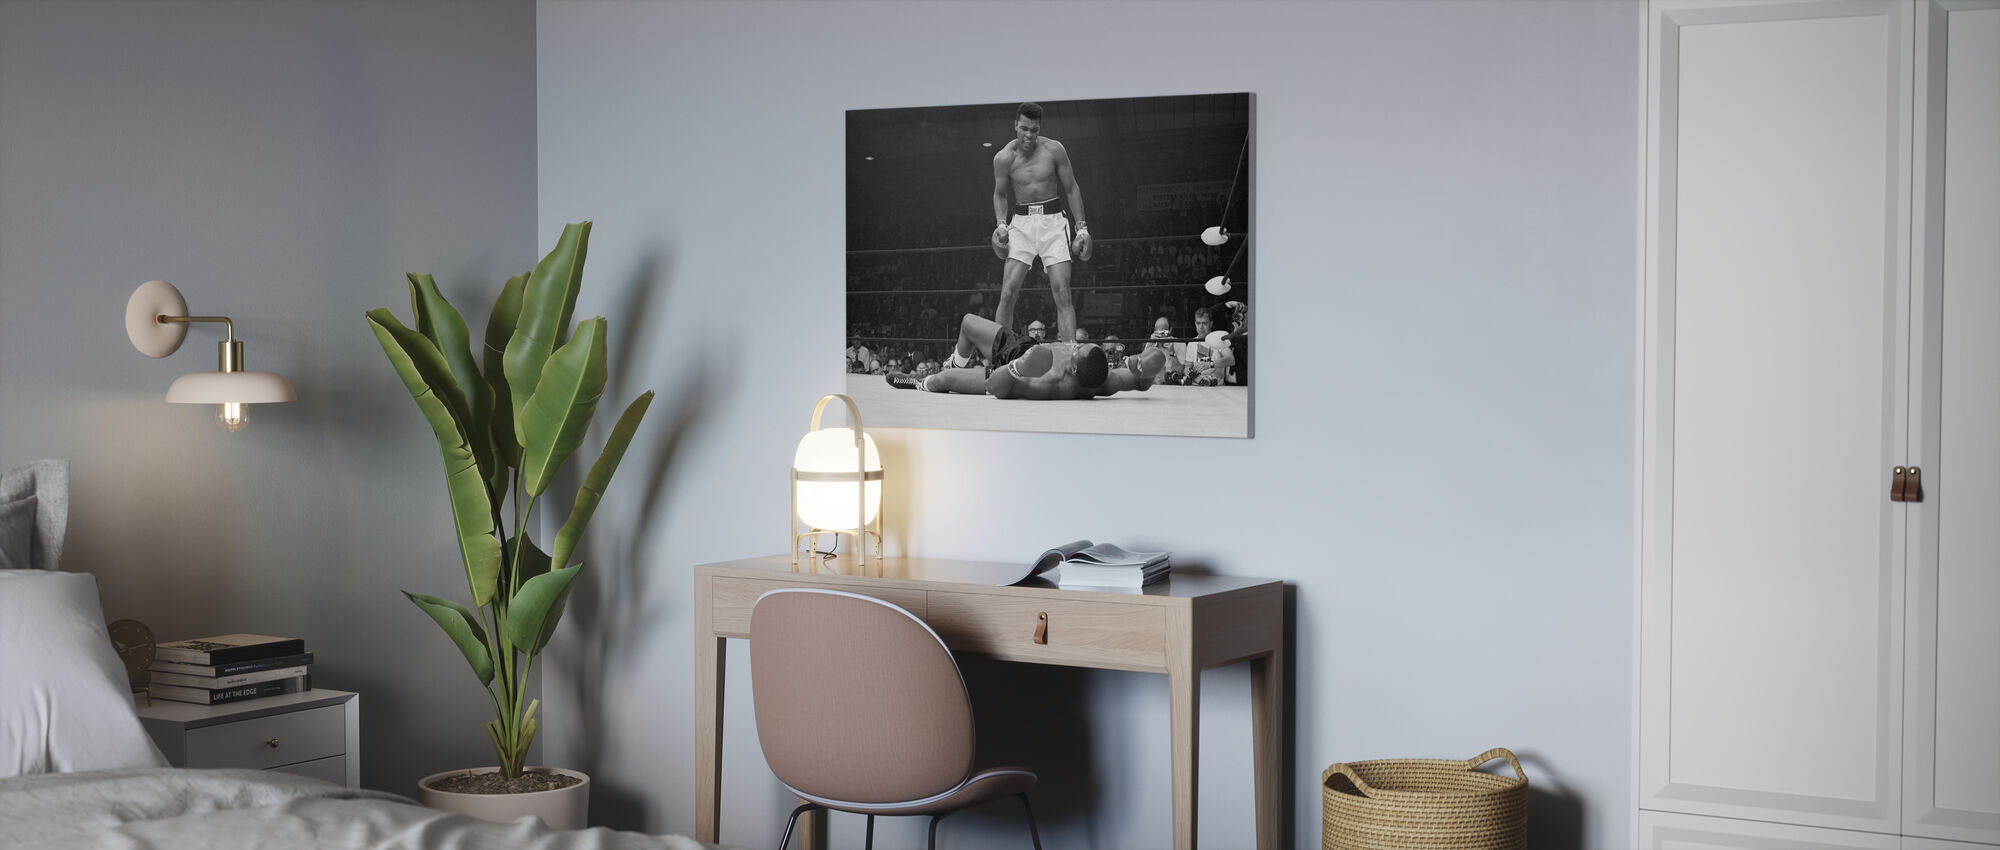 Muhammad Ali vs Sonny Liston - Canvas print - Office